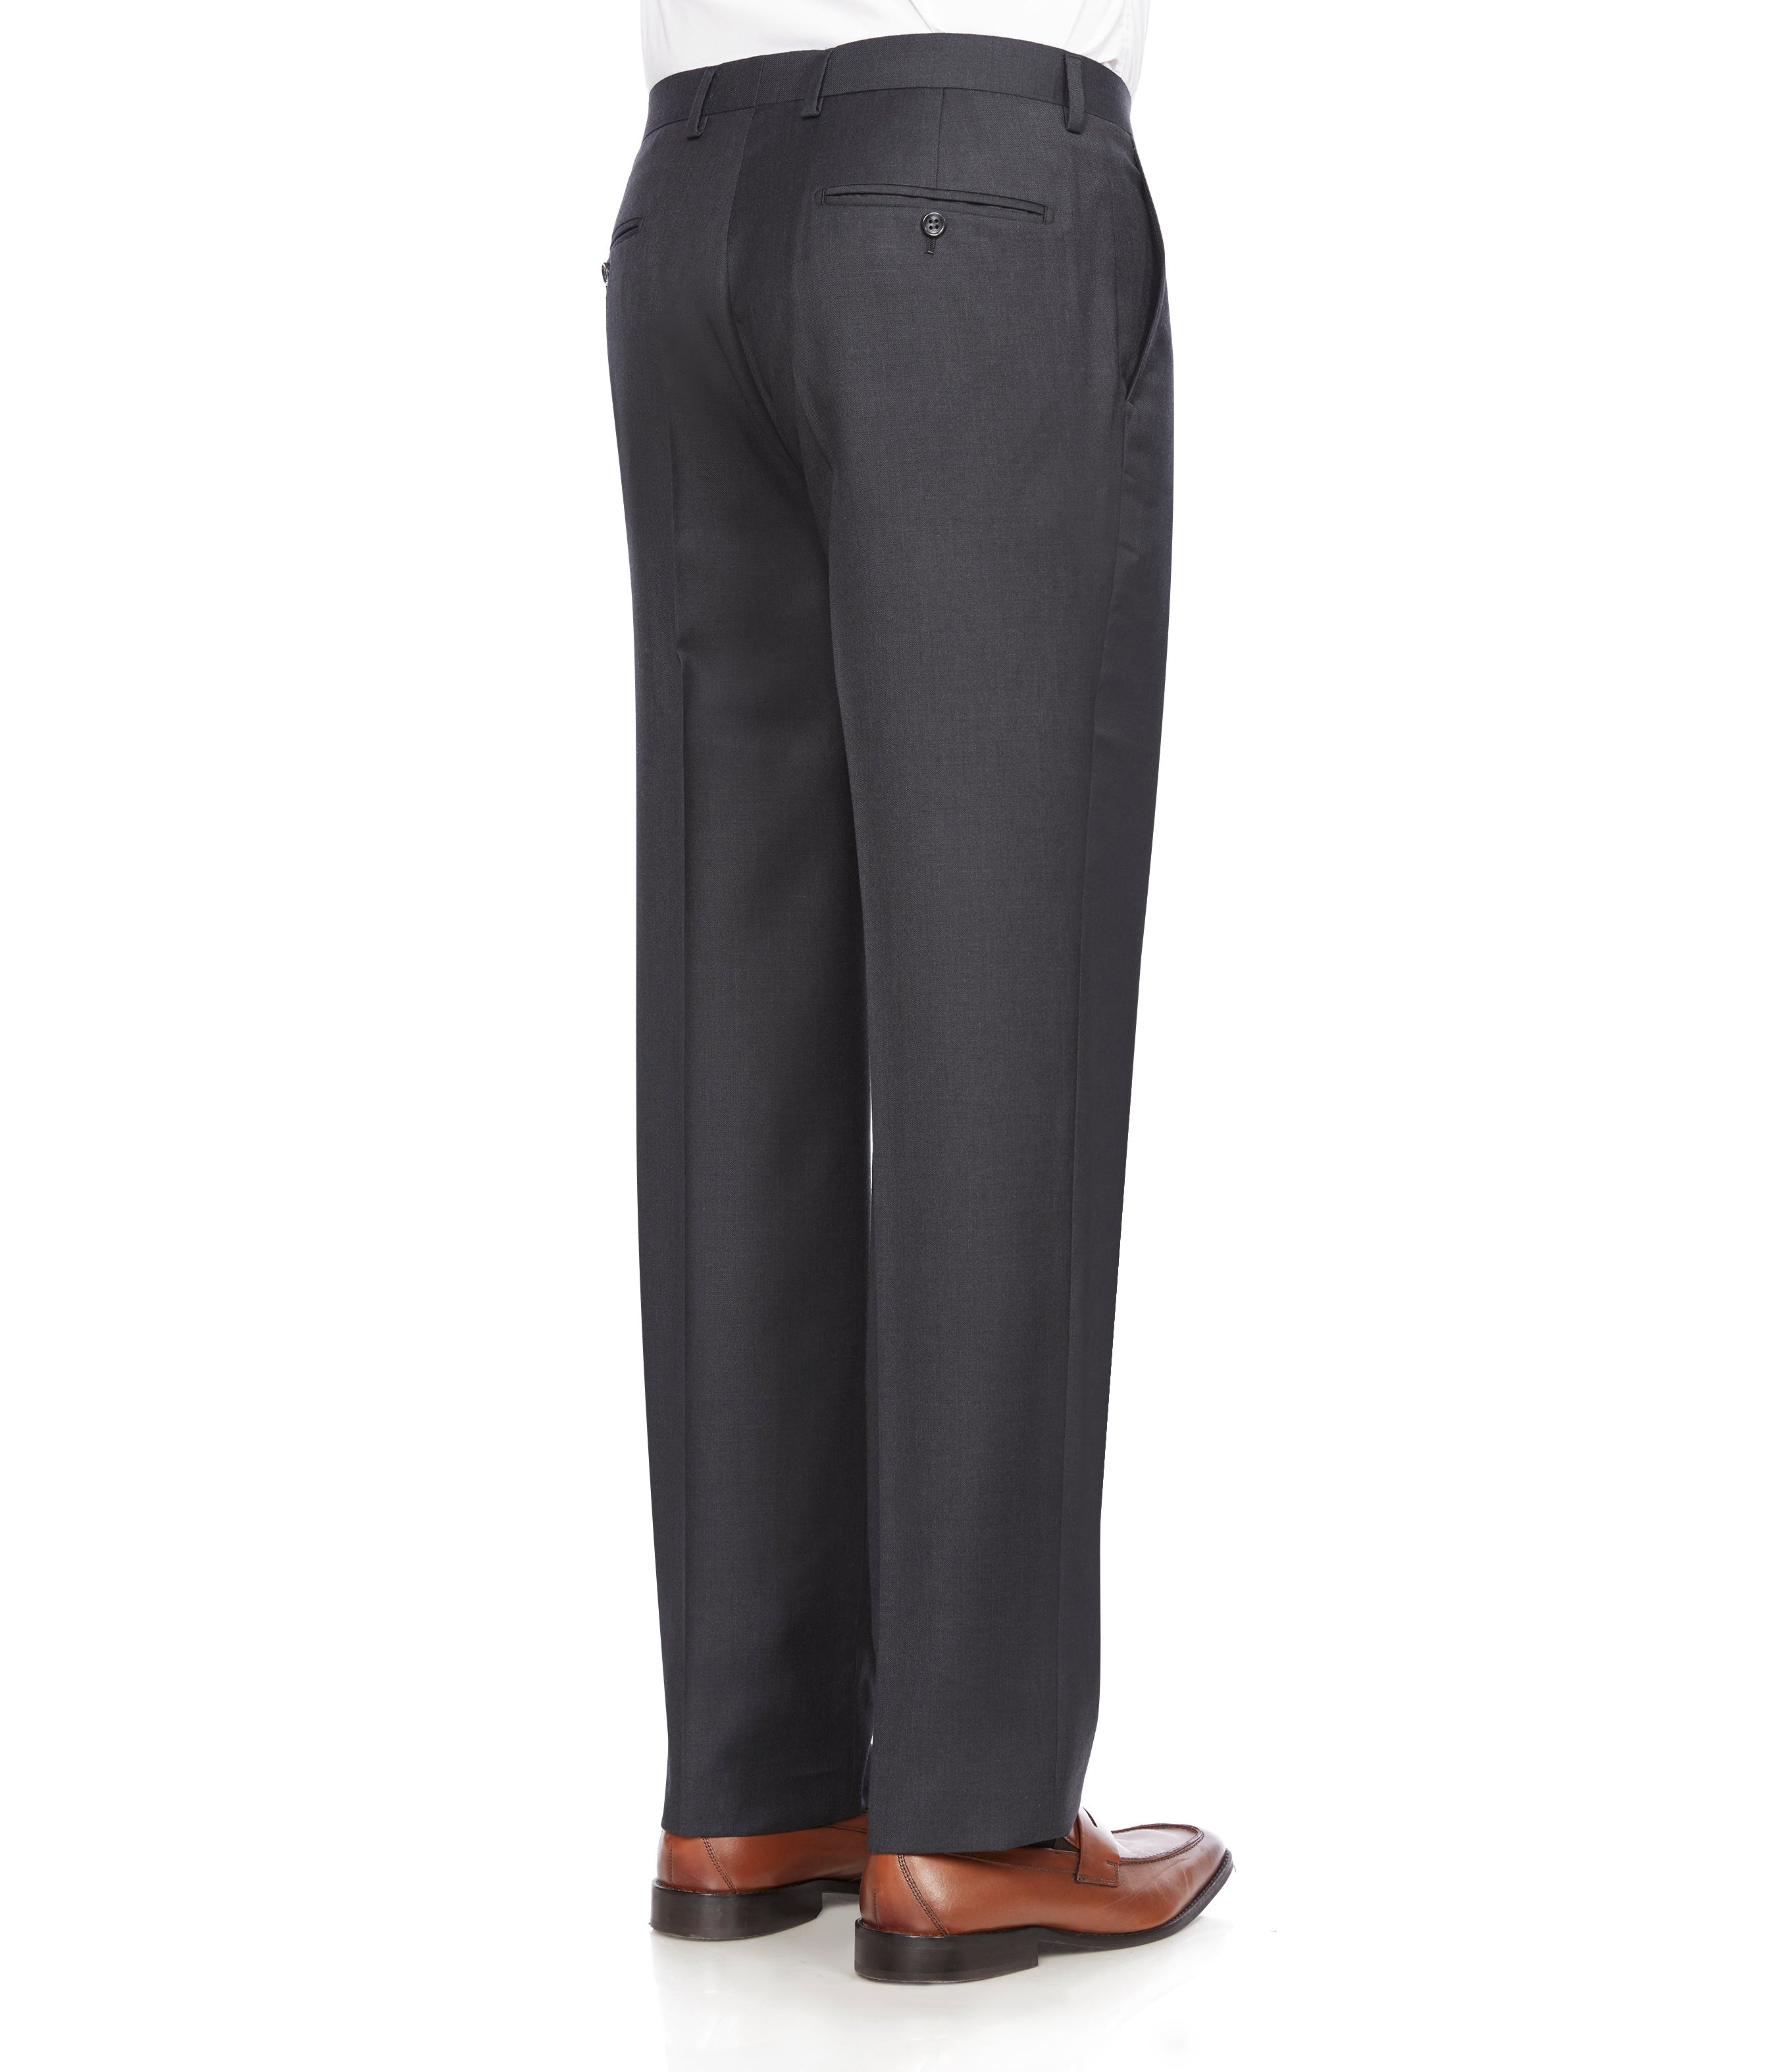 DRESS PANT CHARC BY ZANETTI